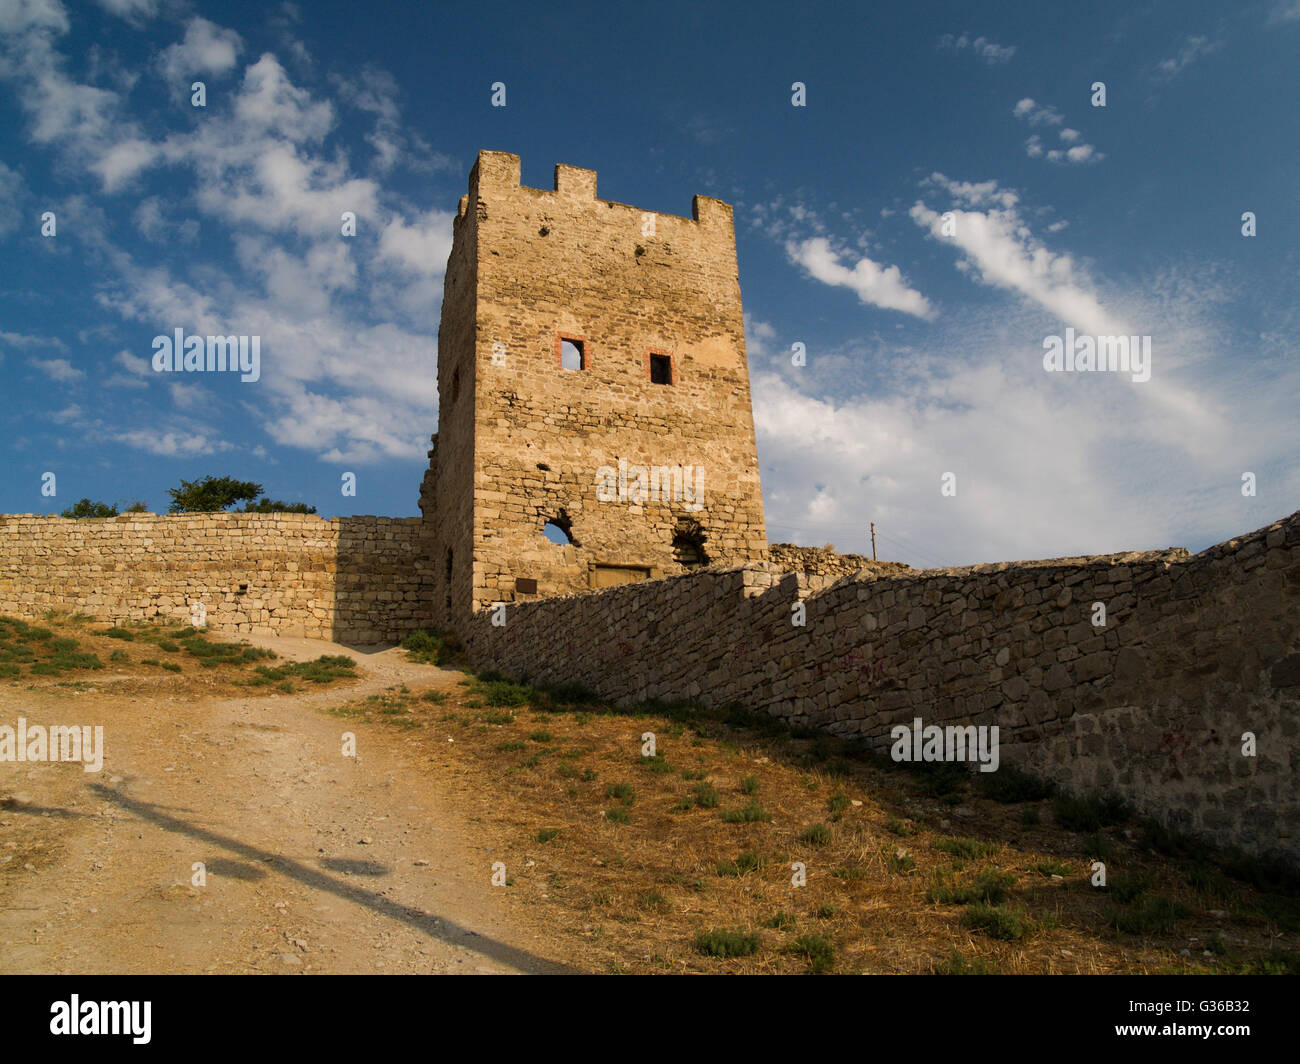 Southern architecture hot summer in a sunny day - Stock Image